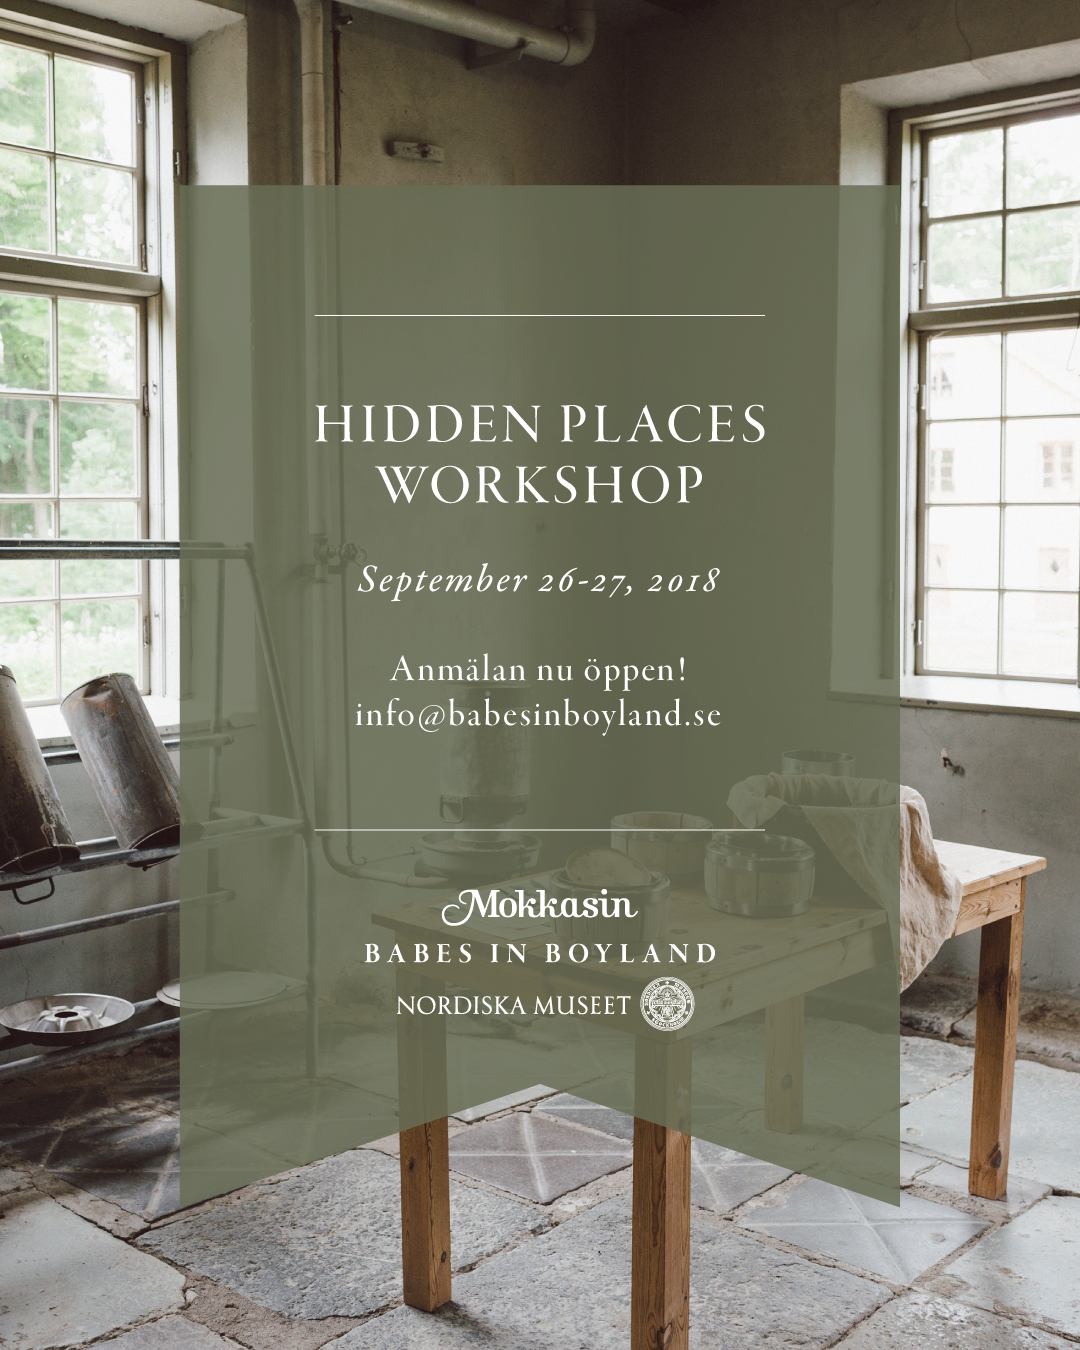 Hidden places workshop by Babes in Boyland & Mokkasin